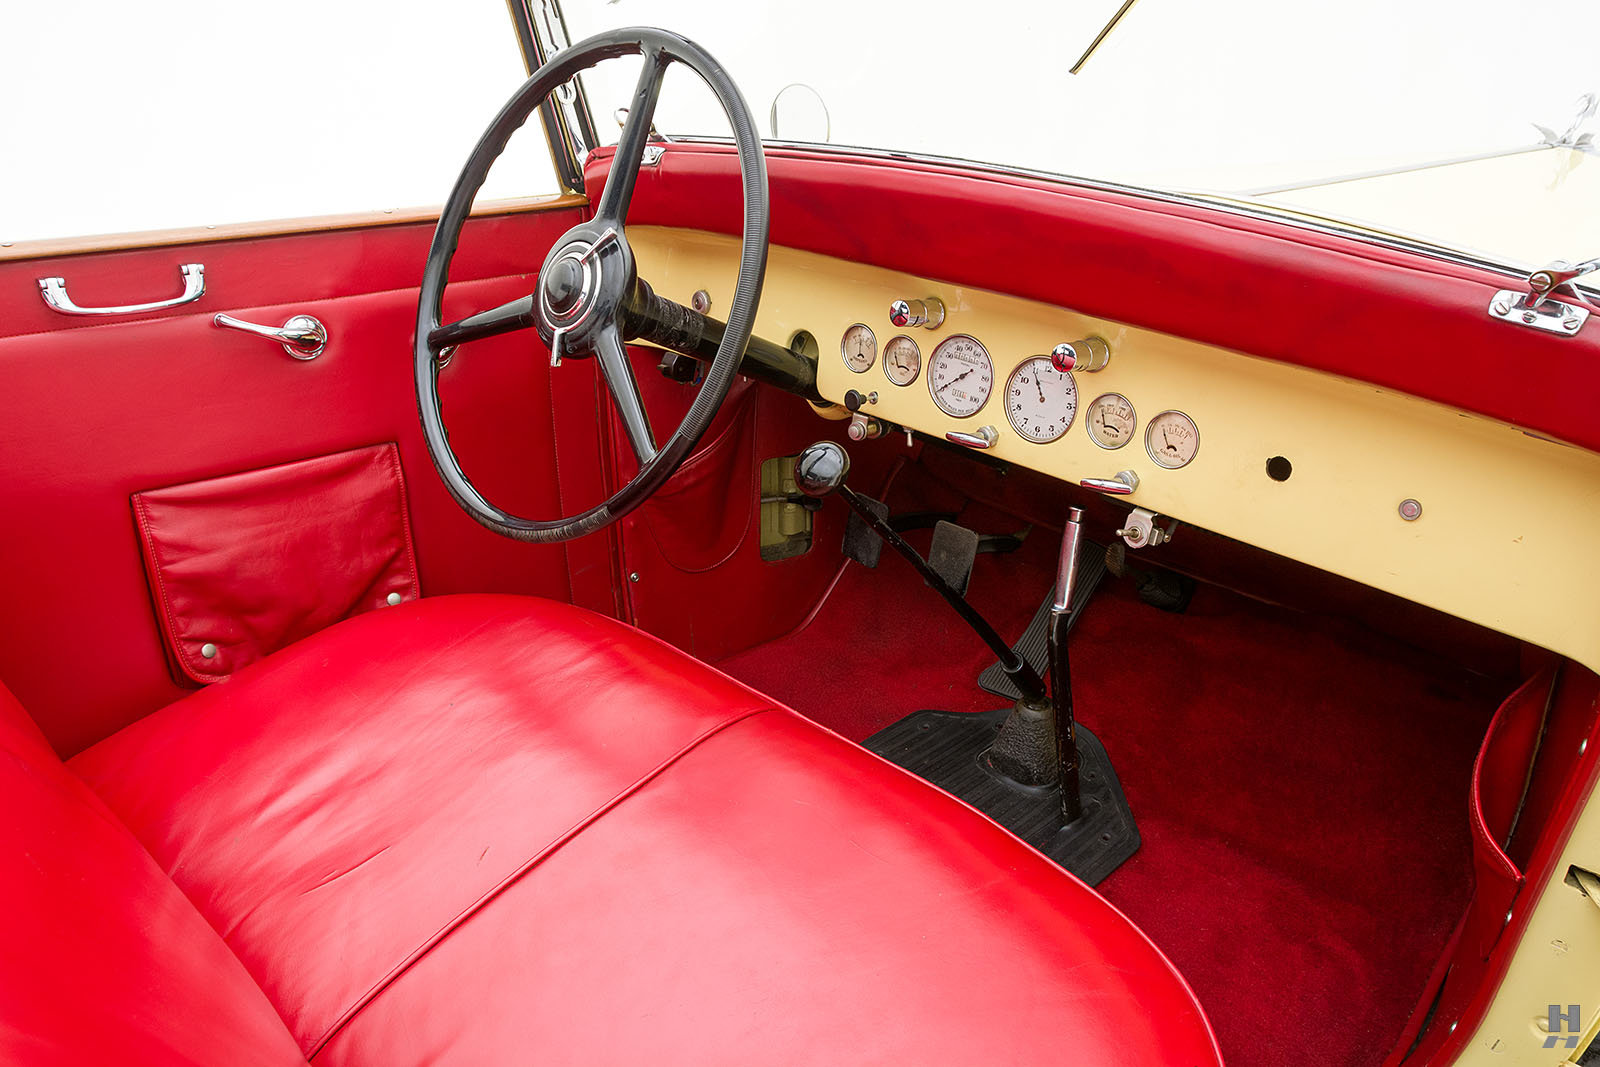 1931 Chrysler CG Imperial Convertible Coupe For Sale (picture 5 of 6)